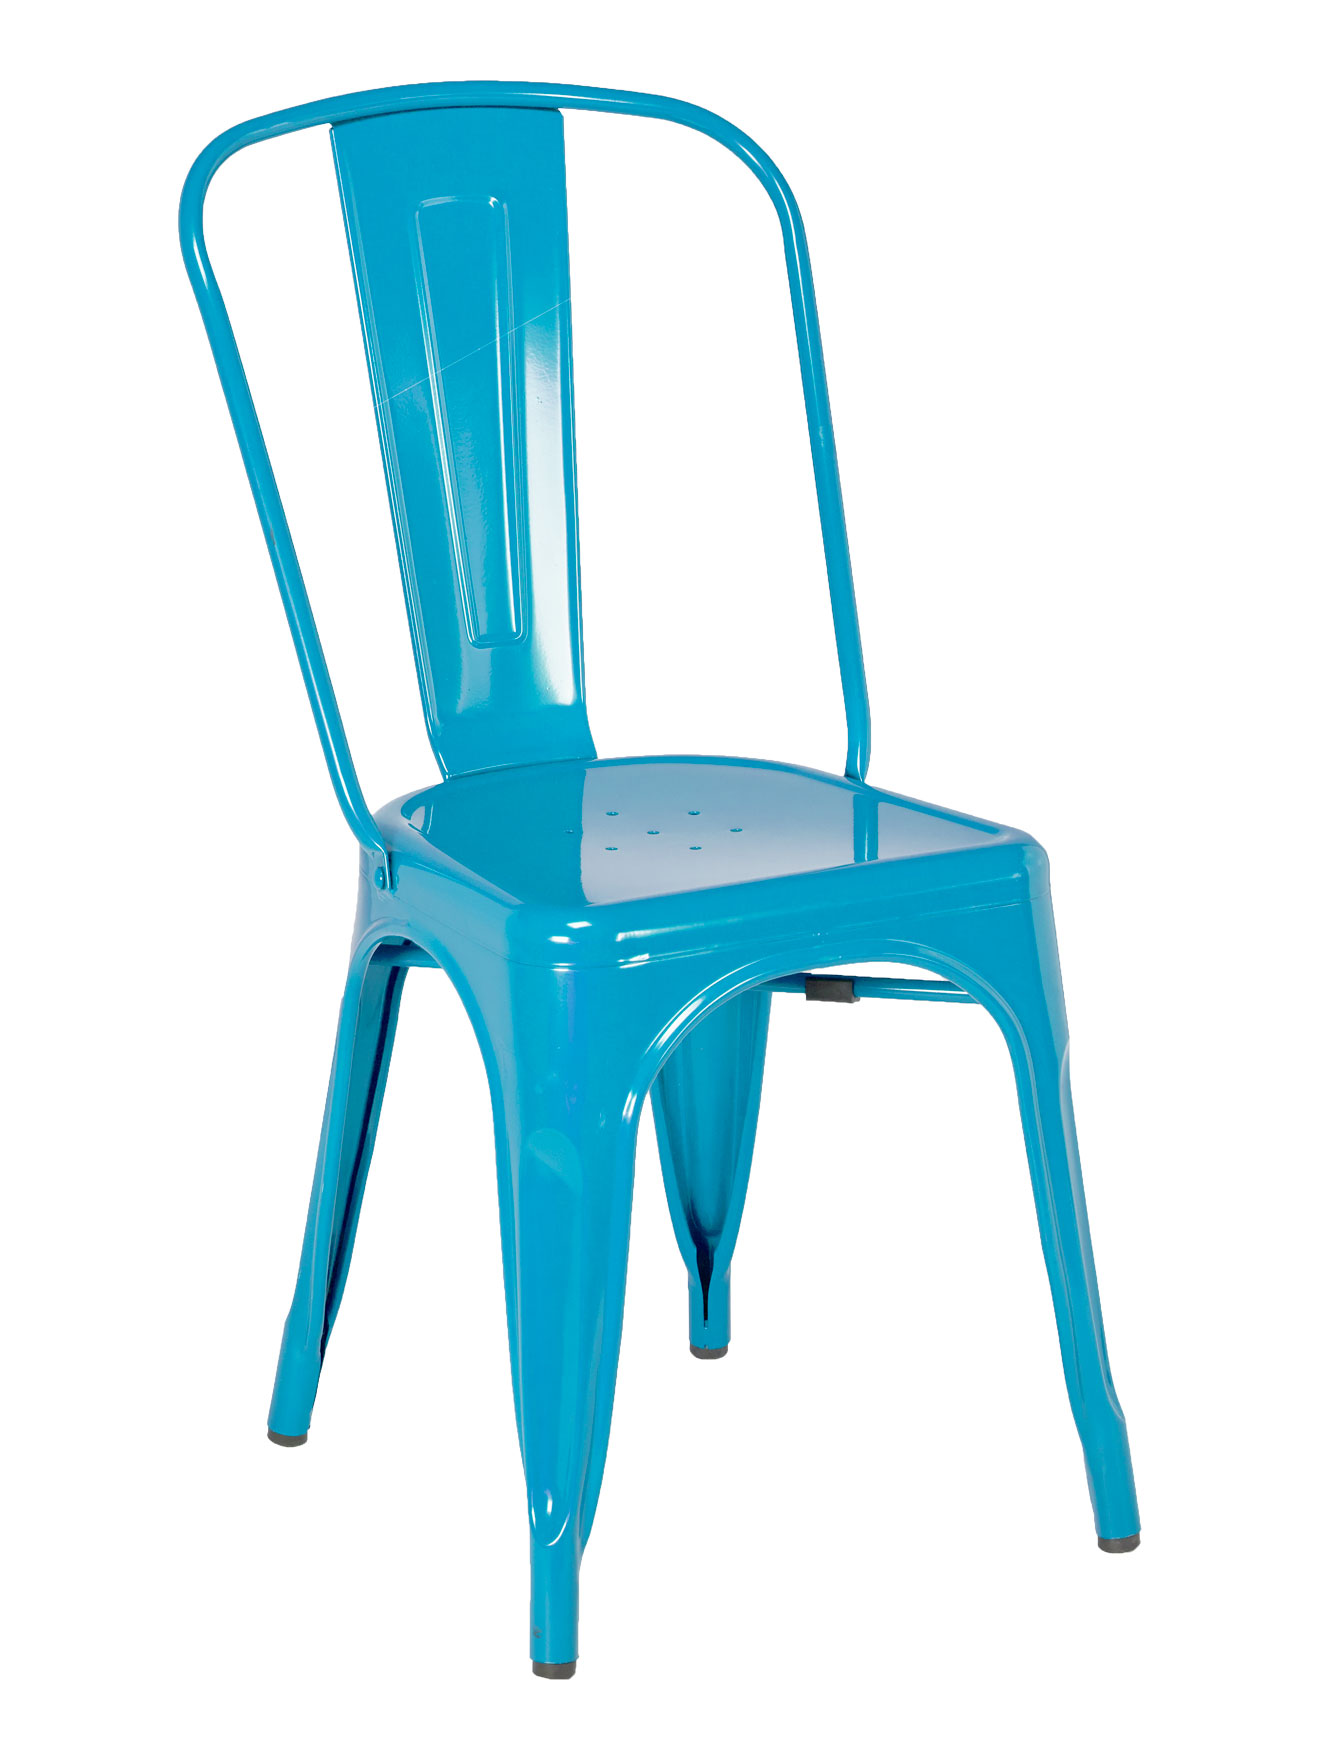 industrial chair blue